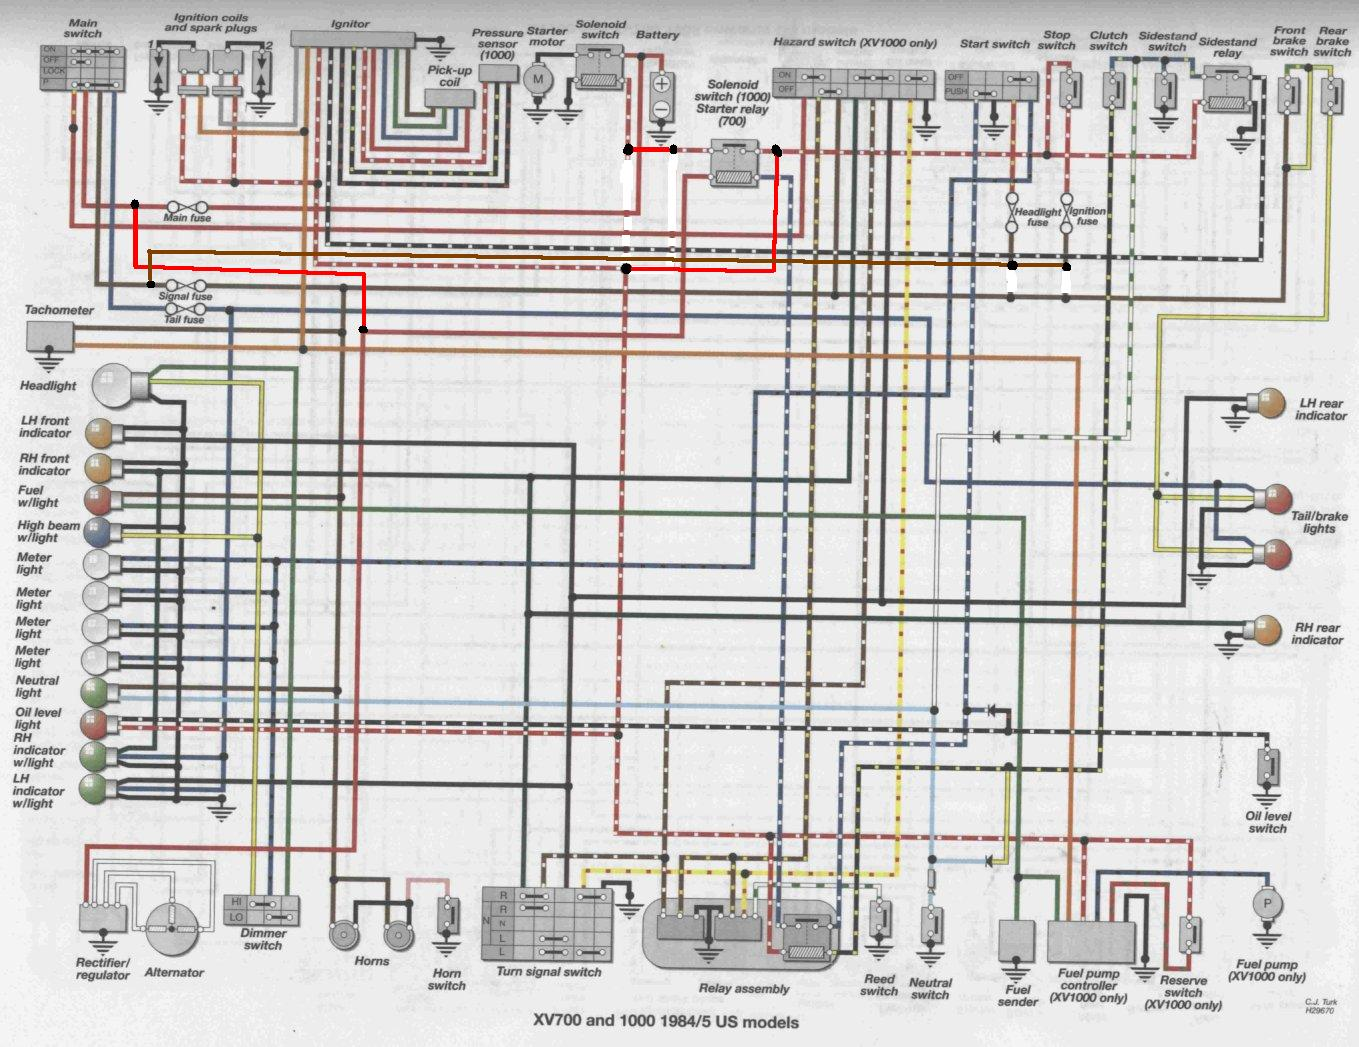 Virago Xv700 Wiring Diagram Flasher Relay Another Diagrams For Turn Signal Switch Need Help 1985 Rh Dotheton Com 12 Volt